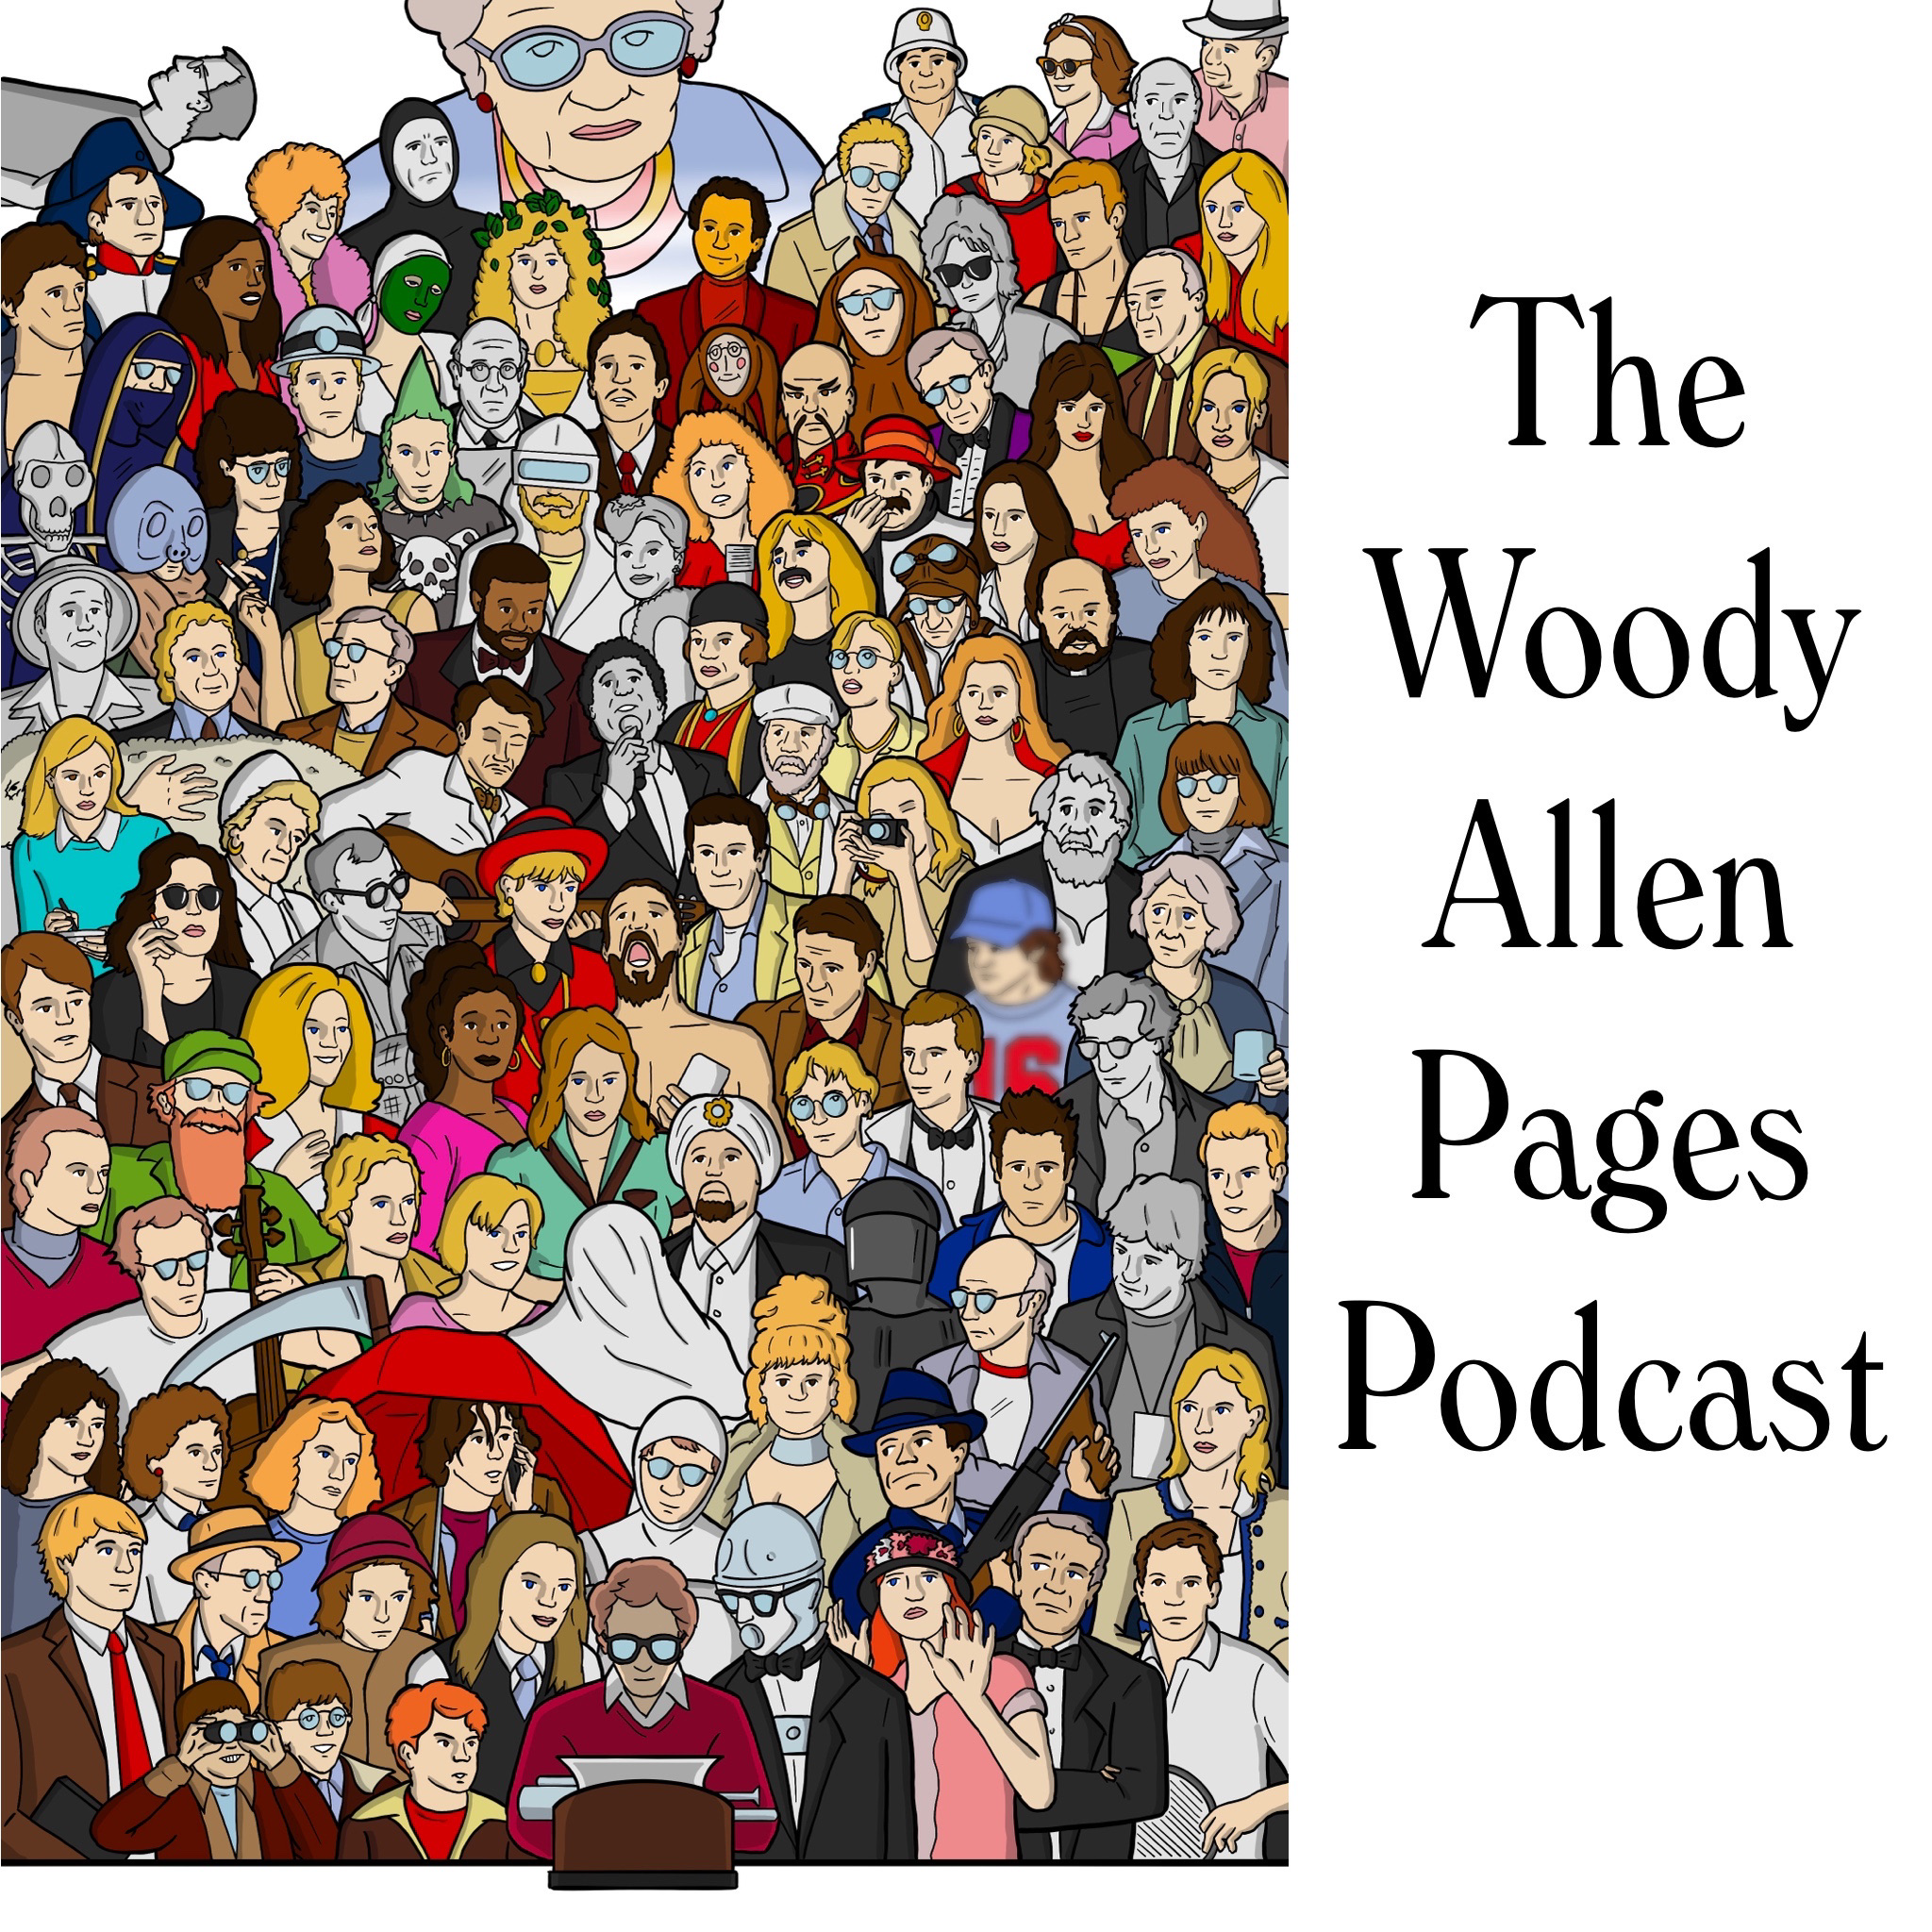 The Woody Allen Pages Podcast